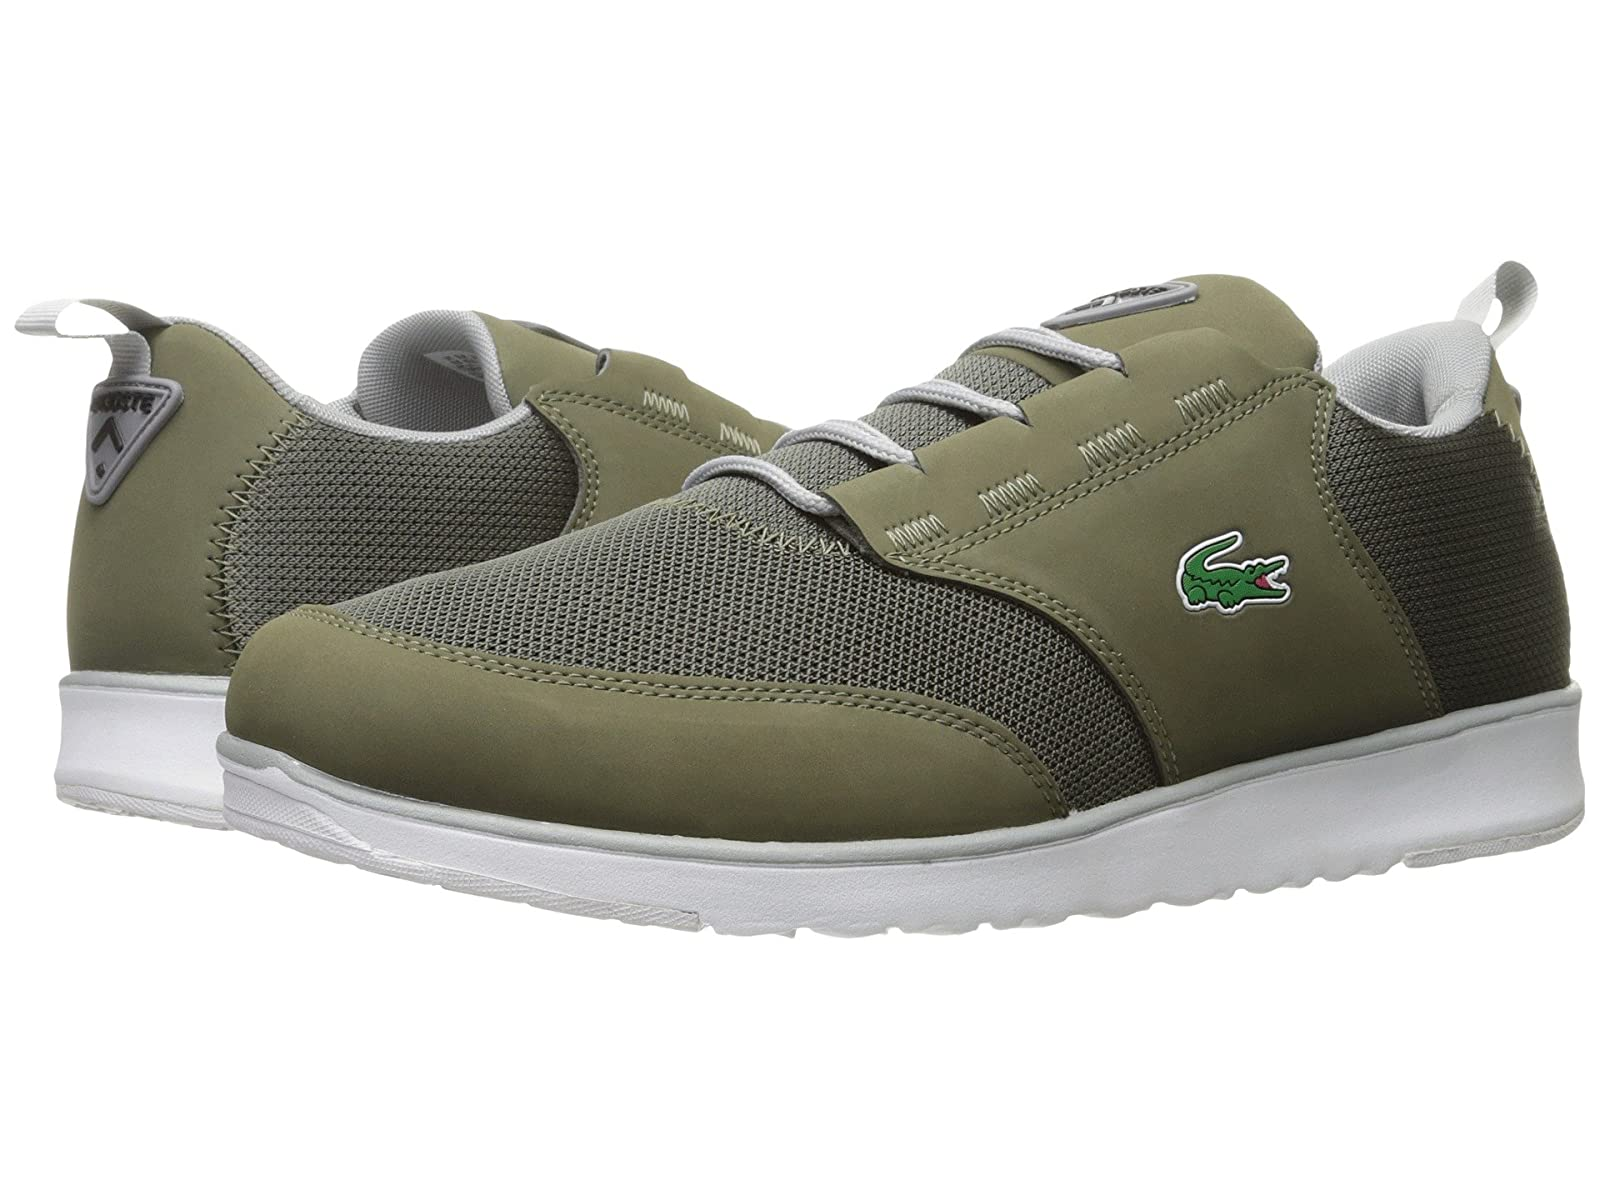 Lacoste L.Ight 217 1Cheap and distinctive eye-catching shoes